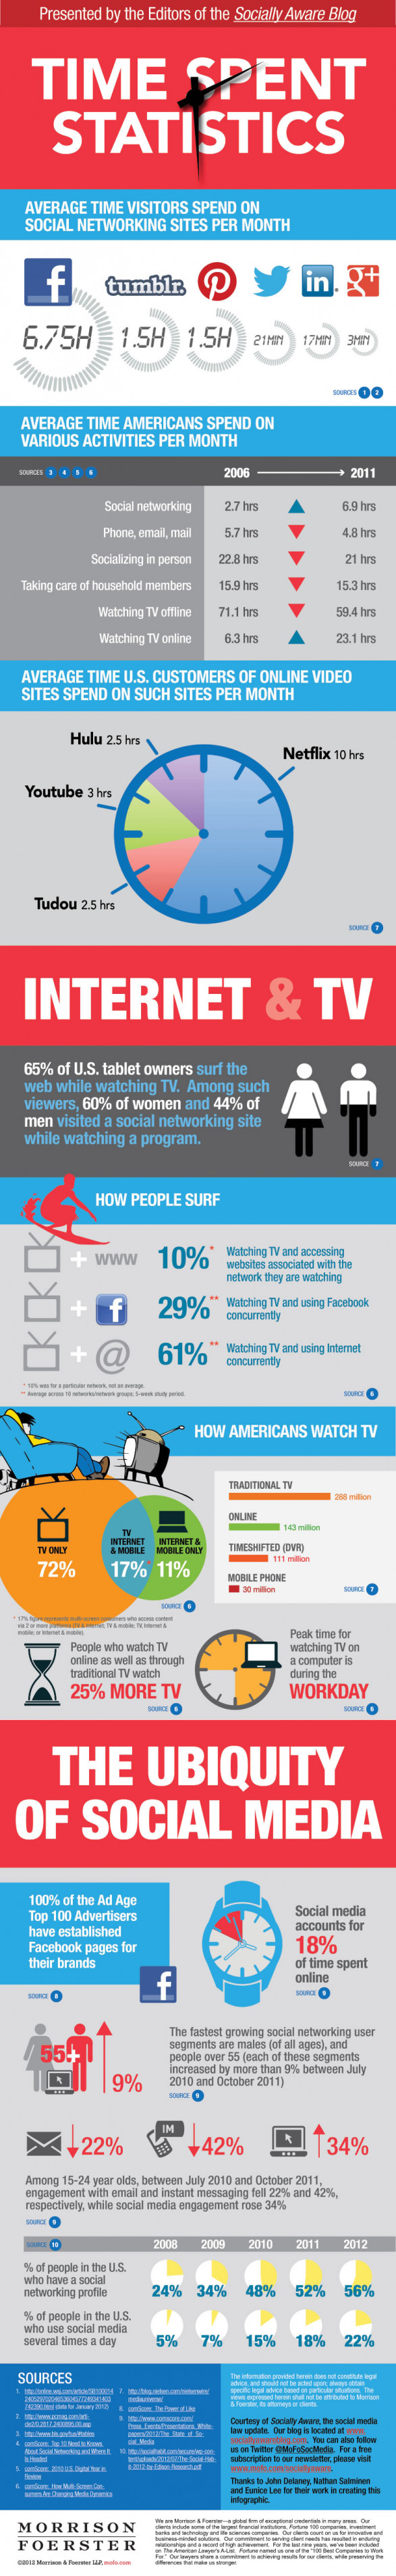 How Much Time You Spend on Facebook, Twitter, Tumblr